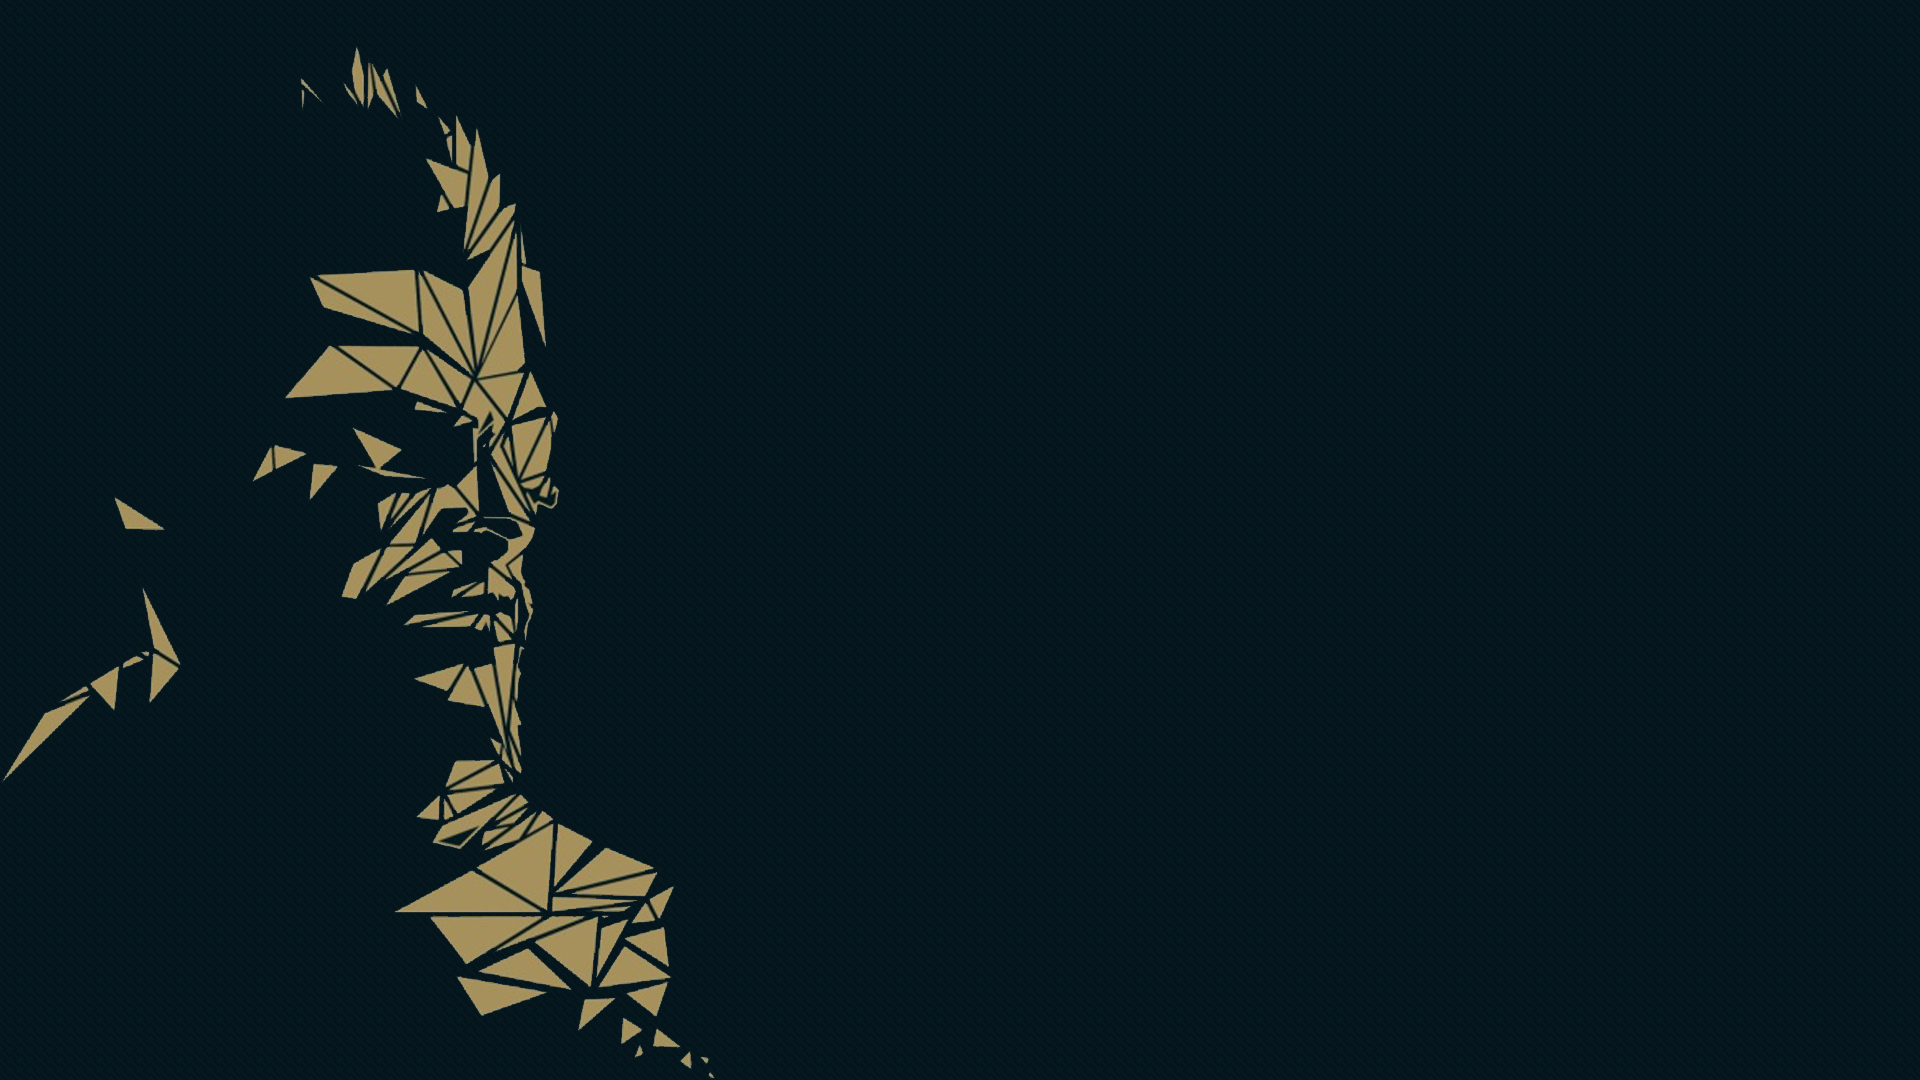 It May Not Be Perfect But Deus Ex Is Still A Blueprint For Gaming Freedom Deus Ex Deus Ex Human Glasses Wallpaper